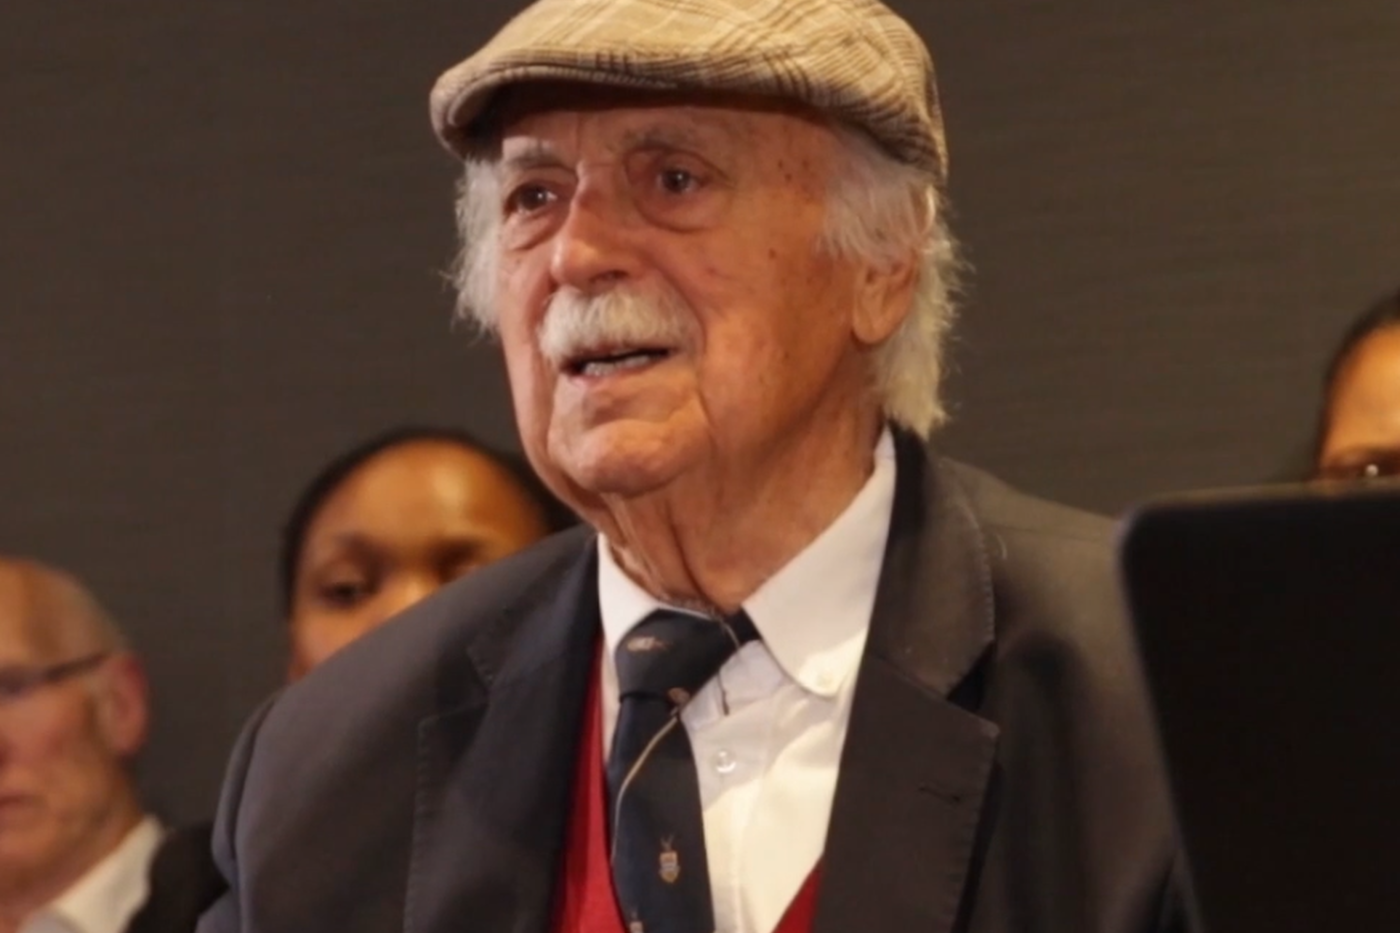 George Bizos at a Foundation dialogue on the Truth & Reconciliation Commission